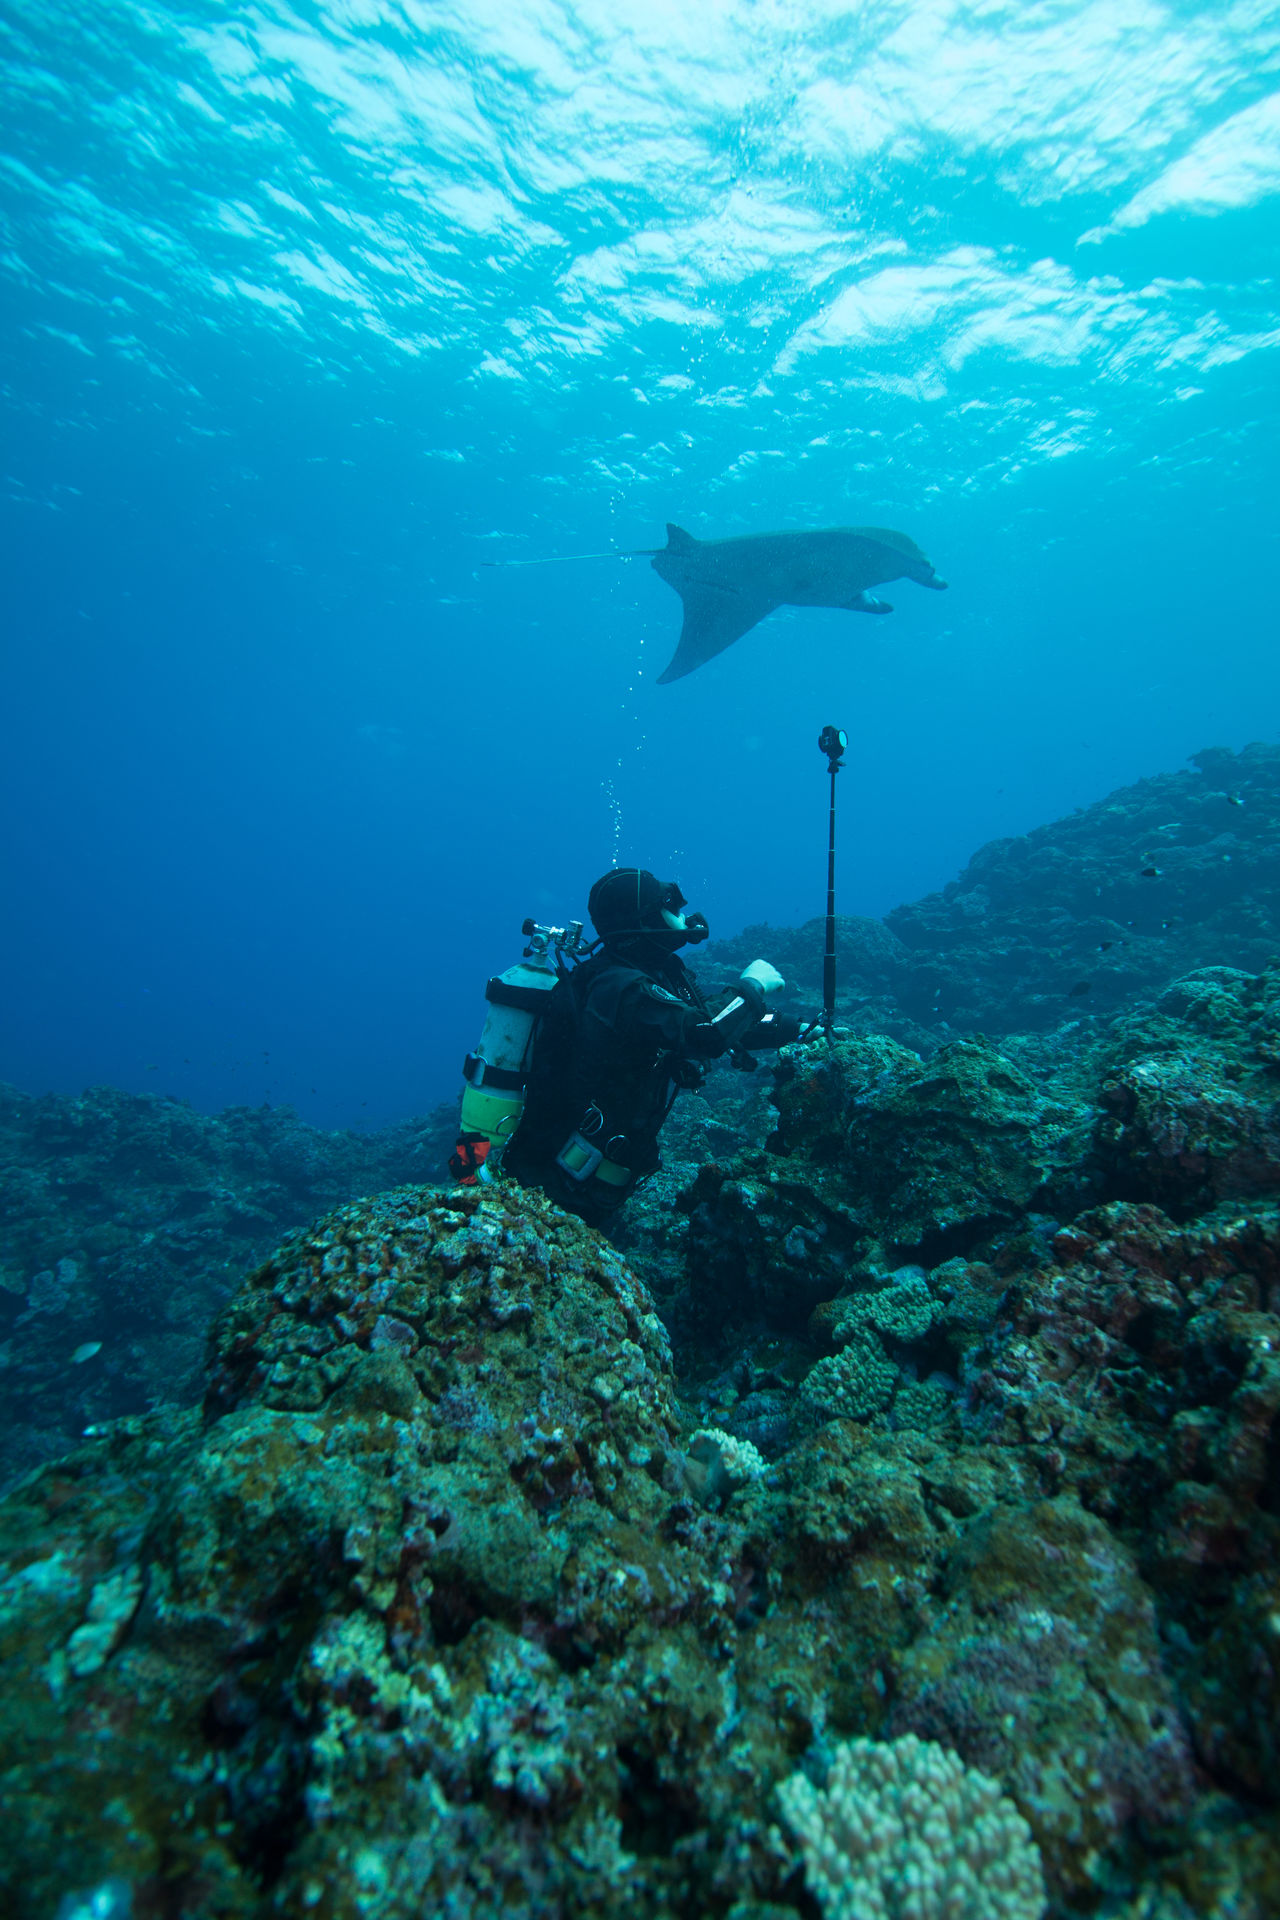 underwater adventure Adventure Animal Themes Animals In The Wild Aqualung - Diving Equipment Coral Day Diver Exploration Leisure Activity Mantaray Nature People Real People SCUBA Scuba Diver Scuba Diving Sea Sea Life Swimming Take Picture Two People UnderSea Underwater Watching A Performance Water